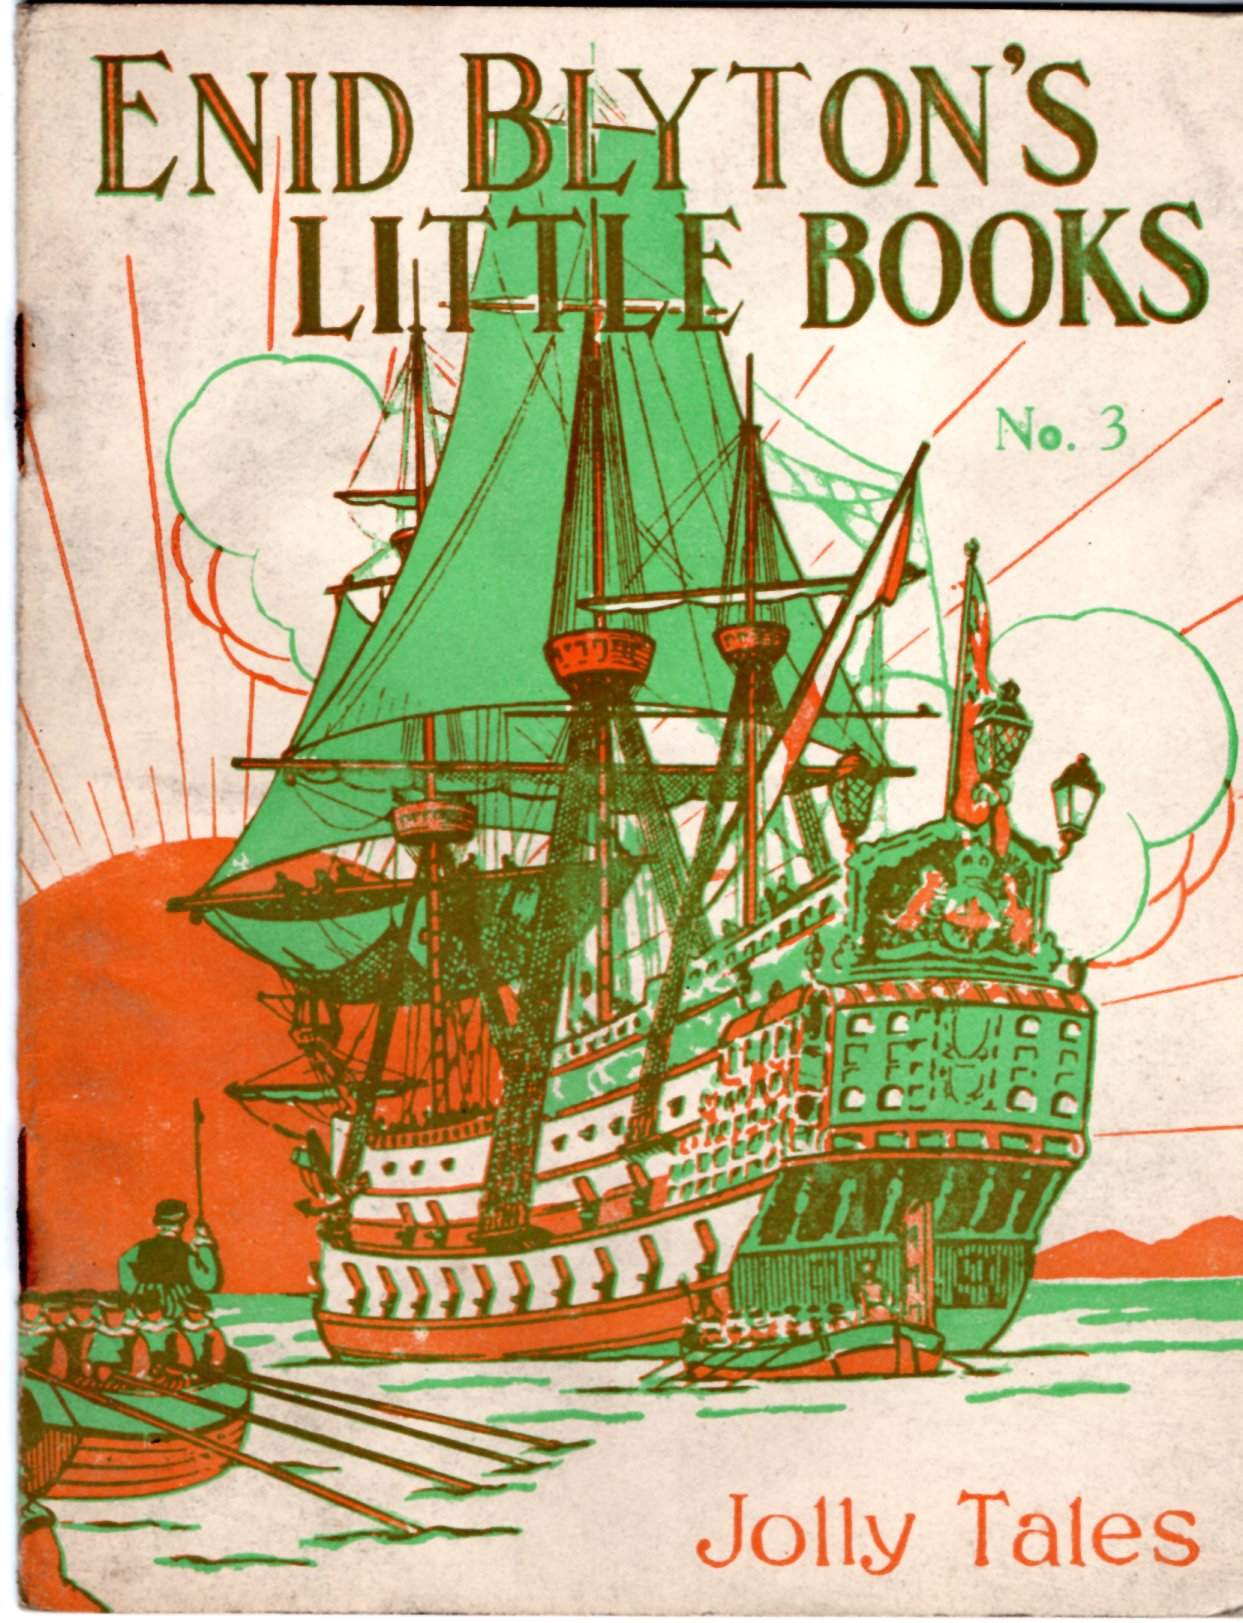 Image for Enid Blyton's Little Books No. 3: Jolly Tales